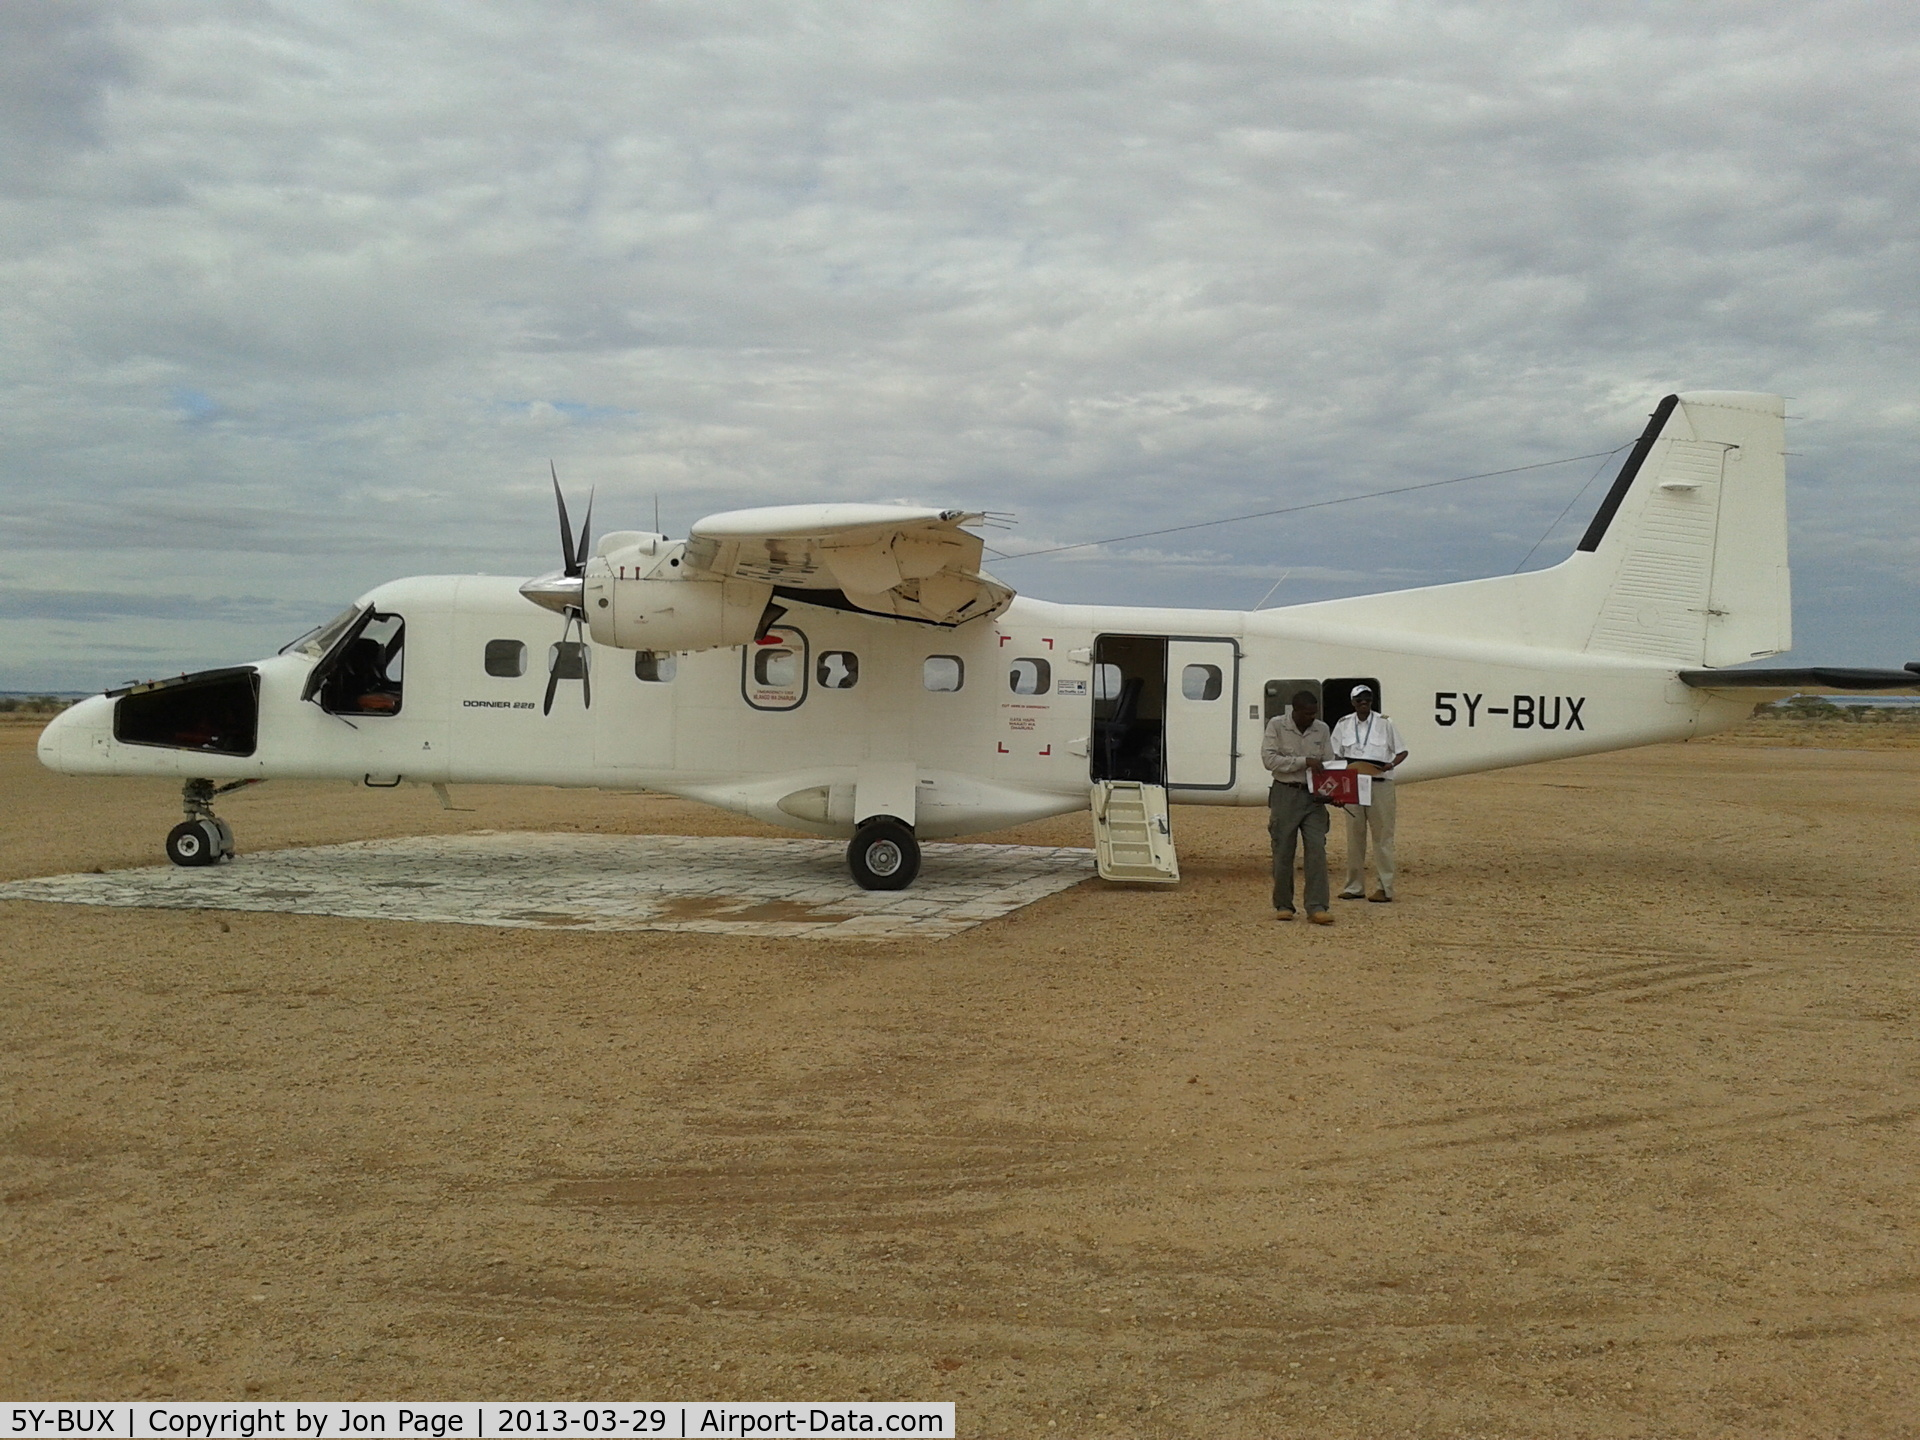 5Y-BUX, 1985 Dornier 228-201 C/N 8080, Taken during stop on route to Lokichar, Kenya.